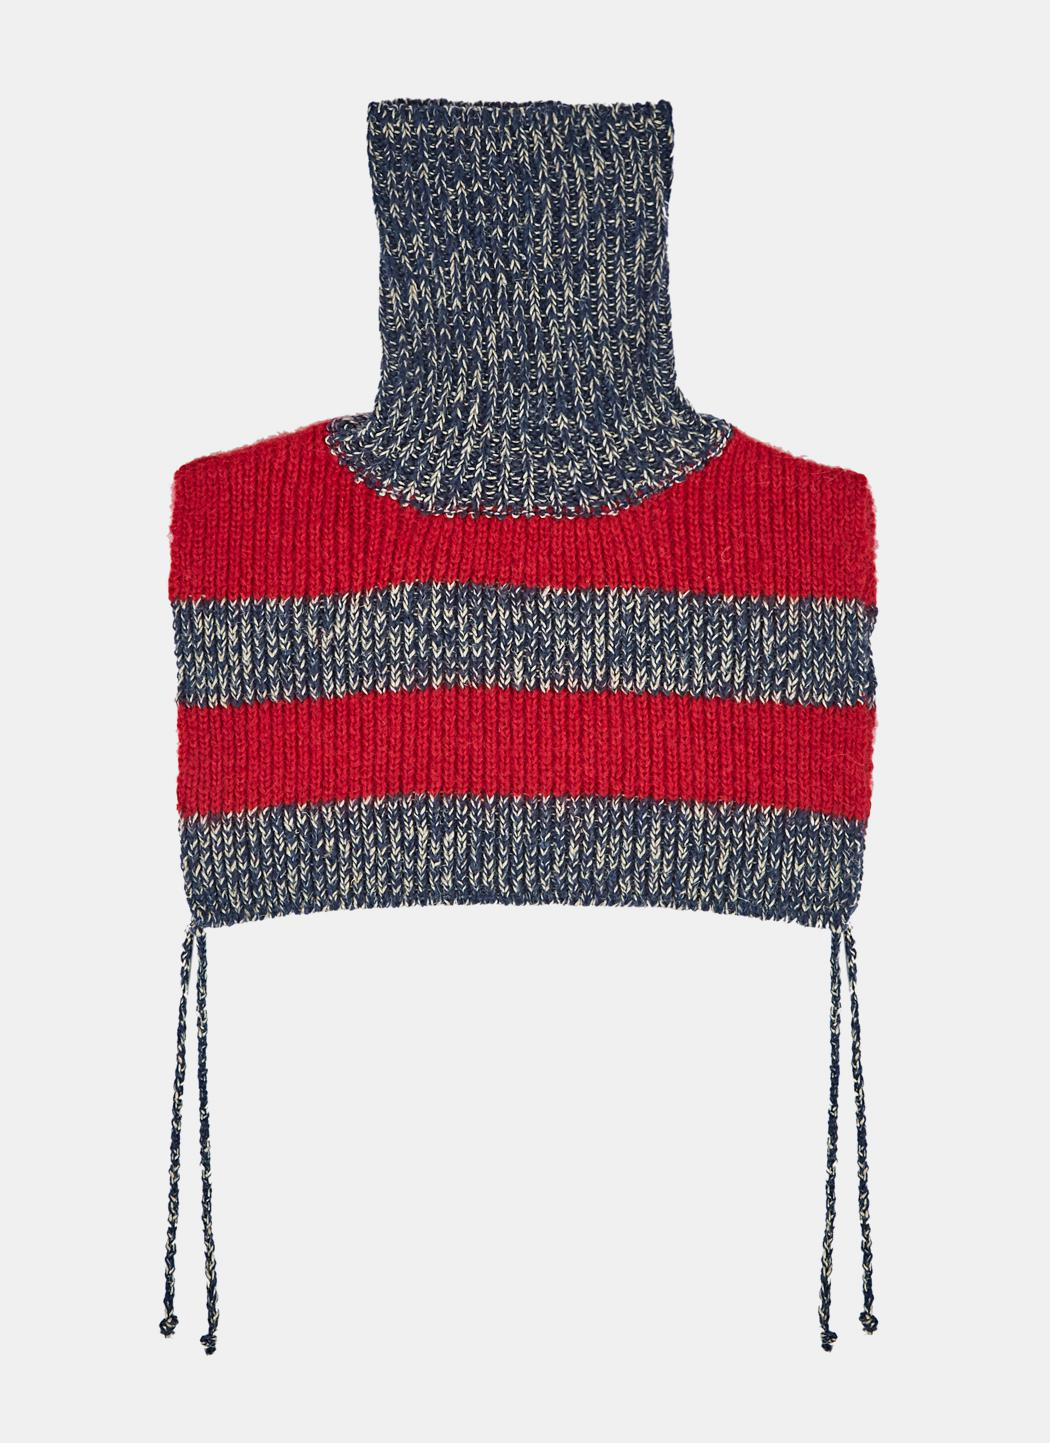 Lyst Gucci Mens Striped Knit Roll Neck Scarf In Navy And Red In